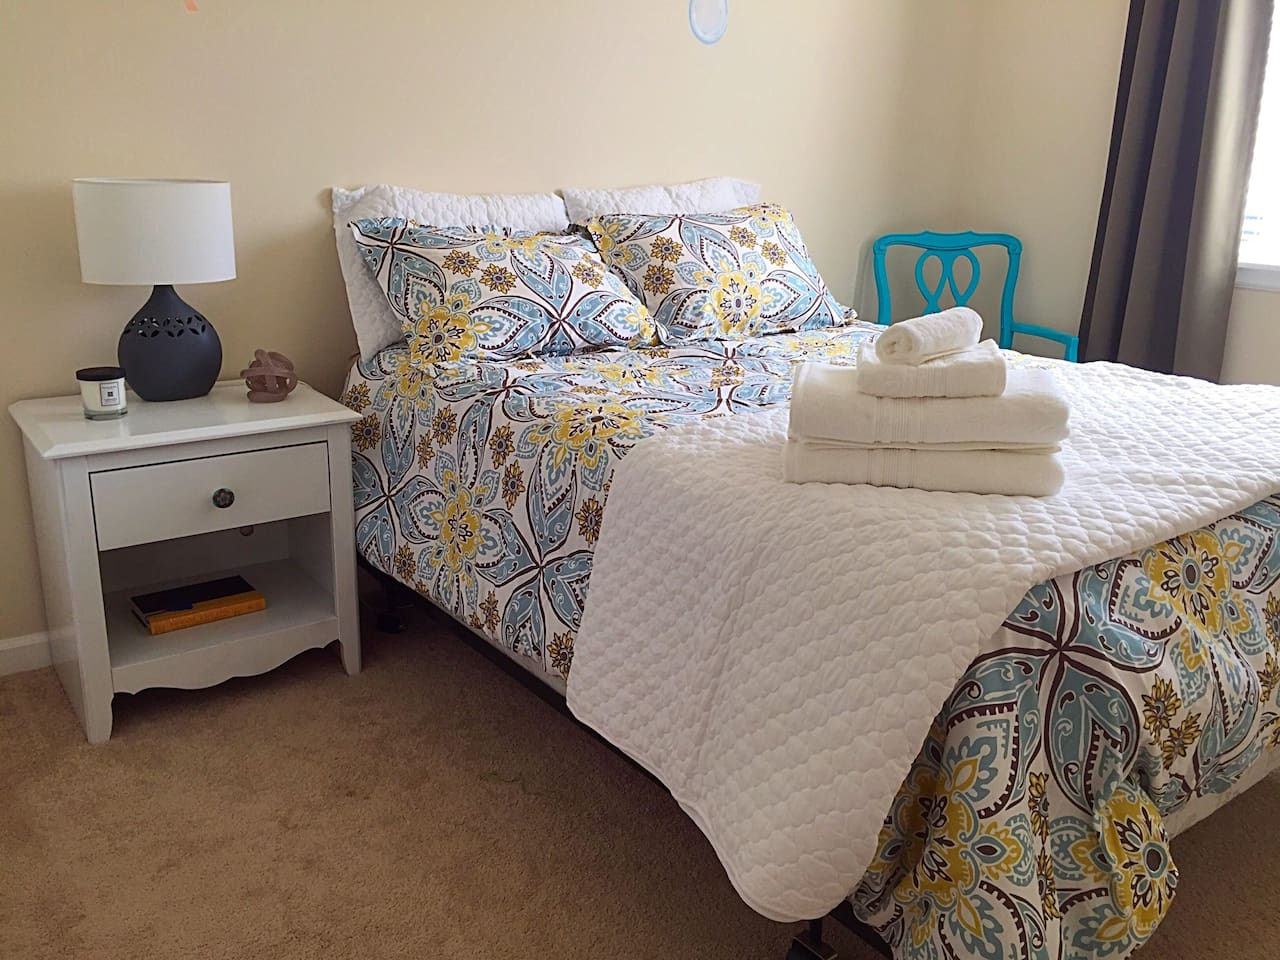 Comfortable private room with full size memory foam mattress